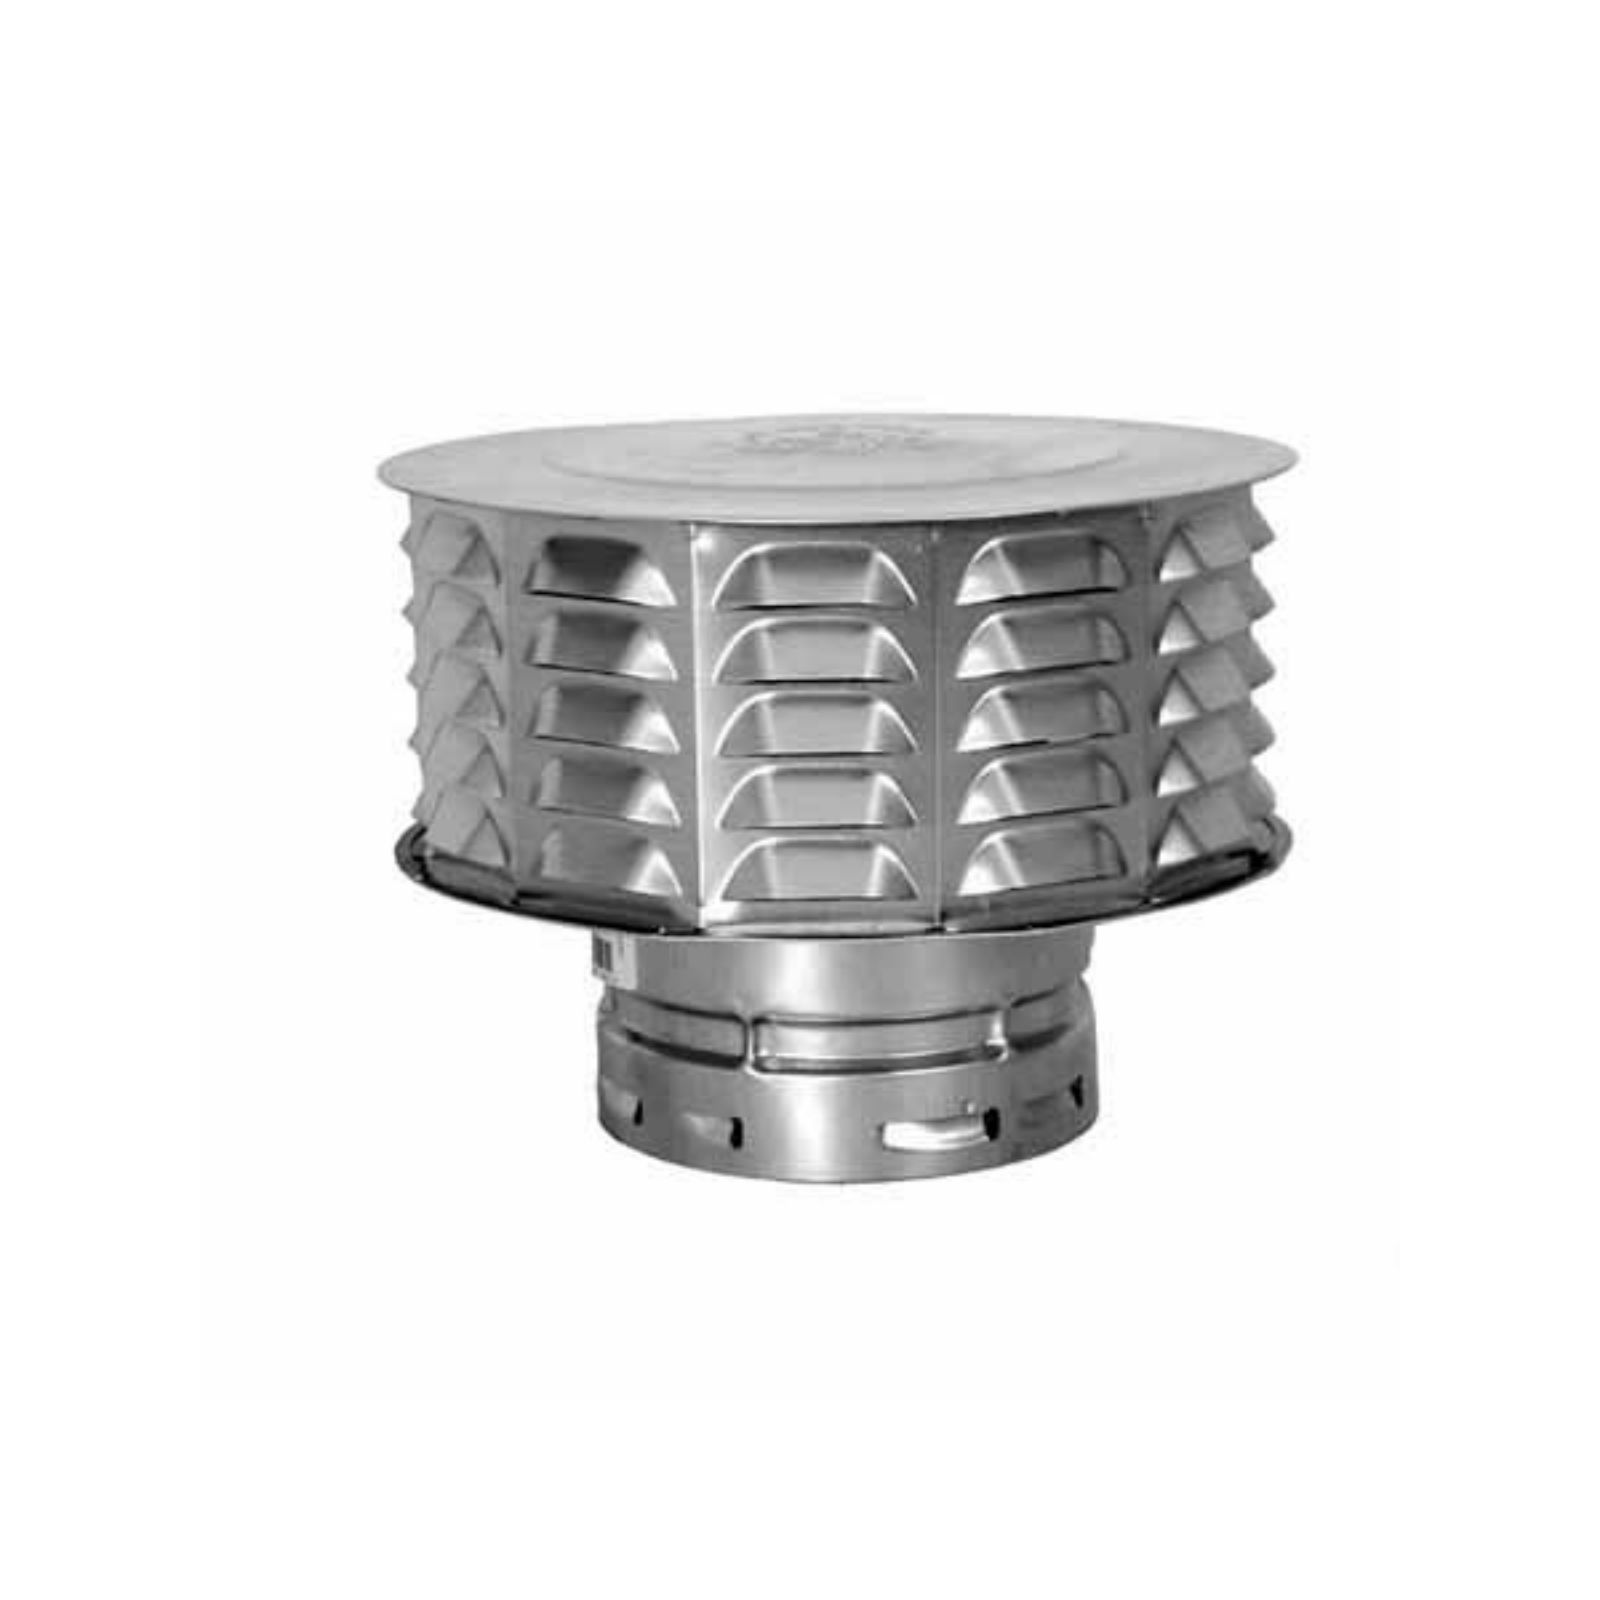 "AmeriVent 3ECW - Snap-lock Cap 3"", Locking, Louvered"